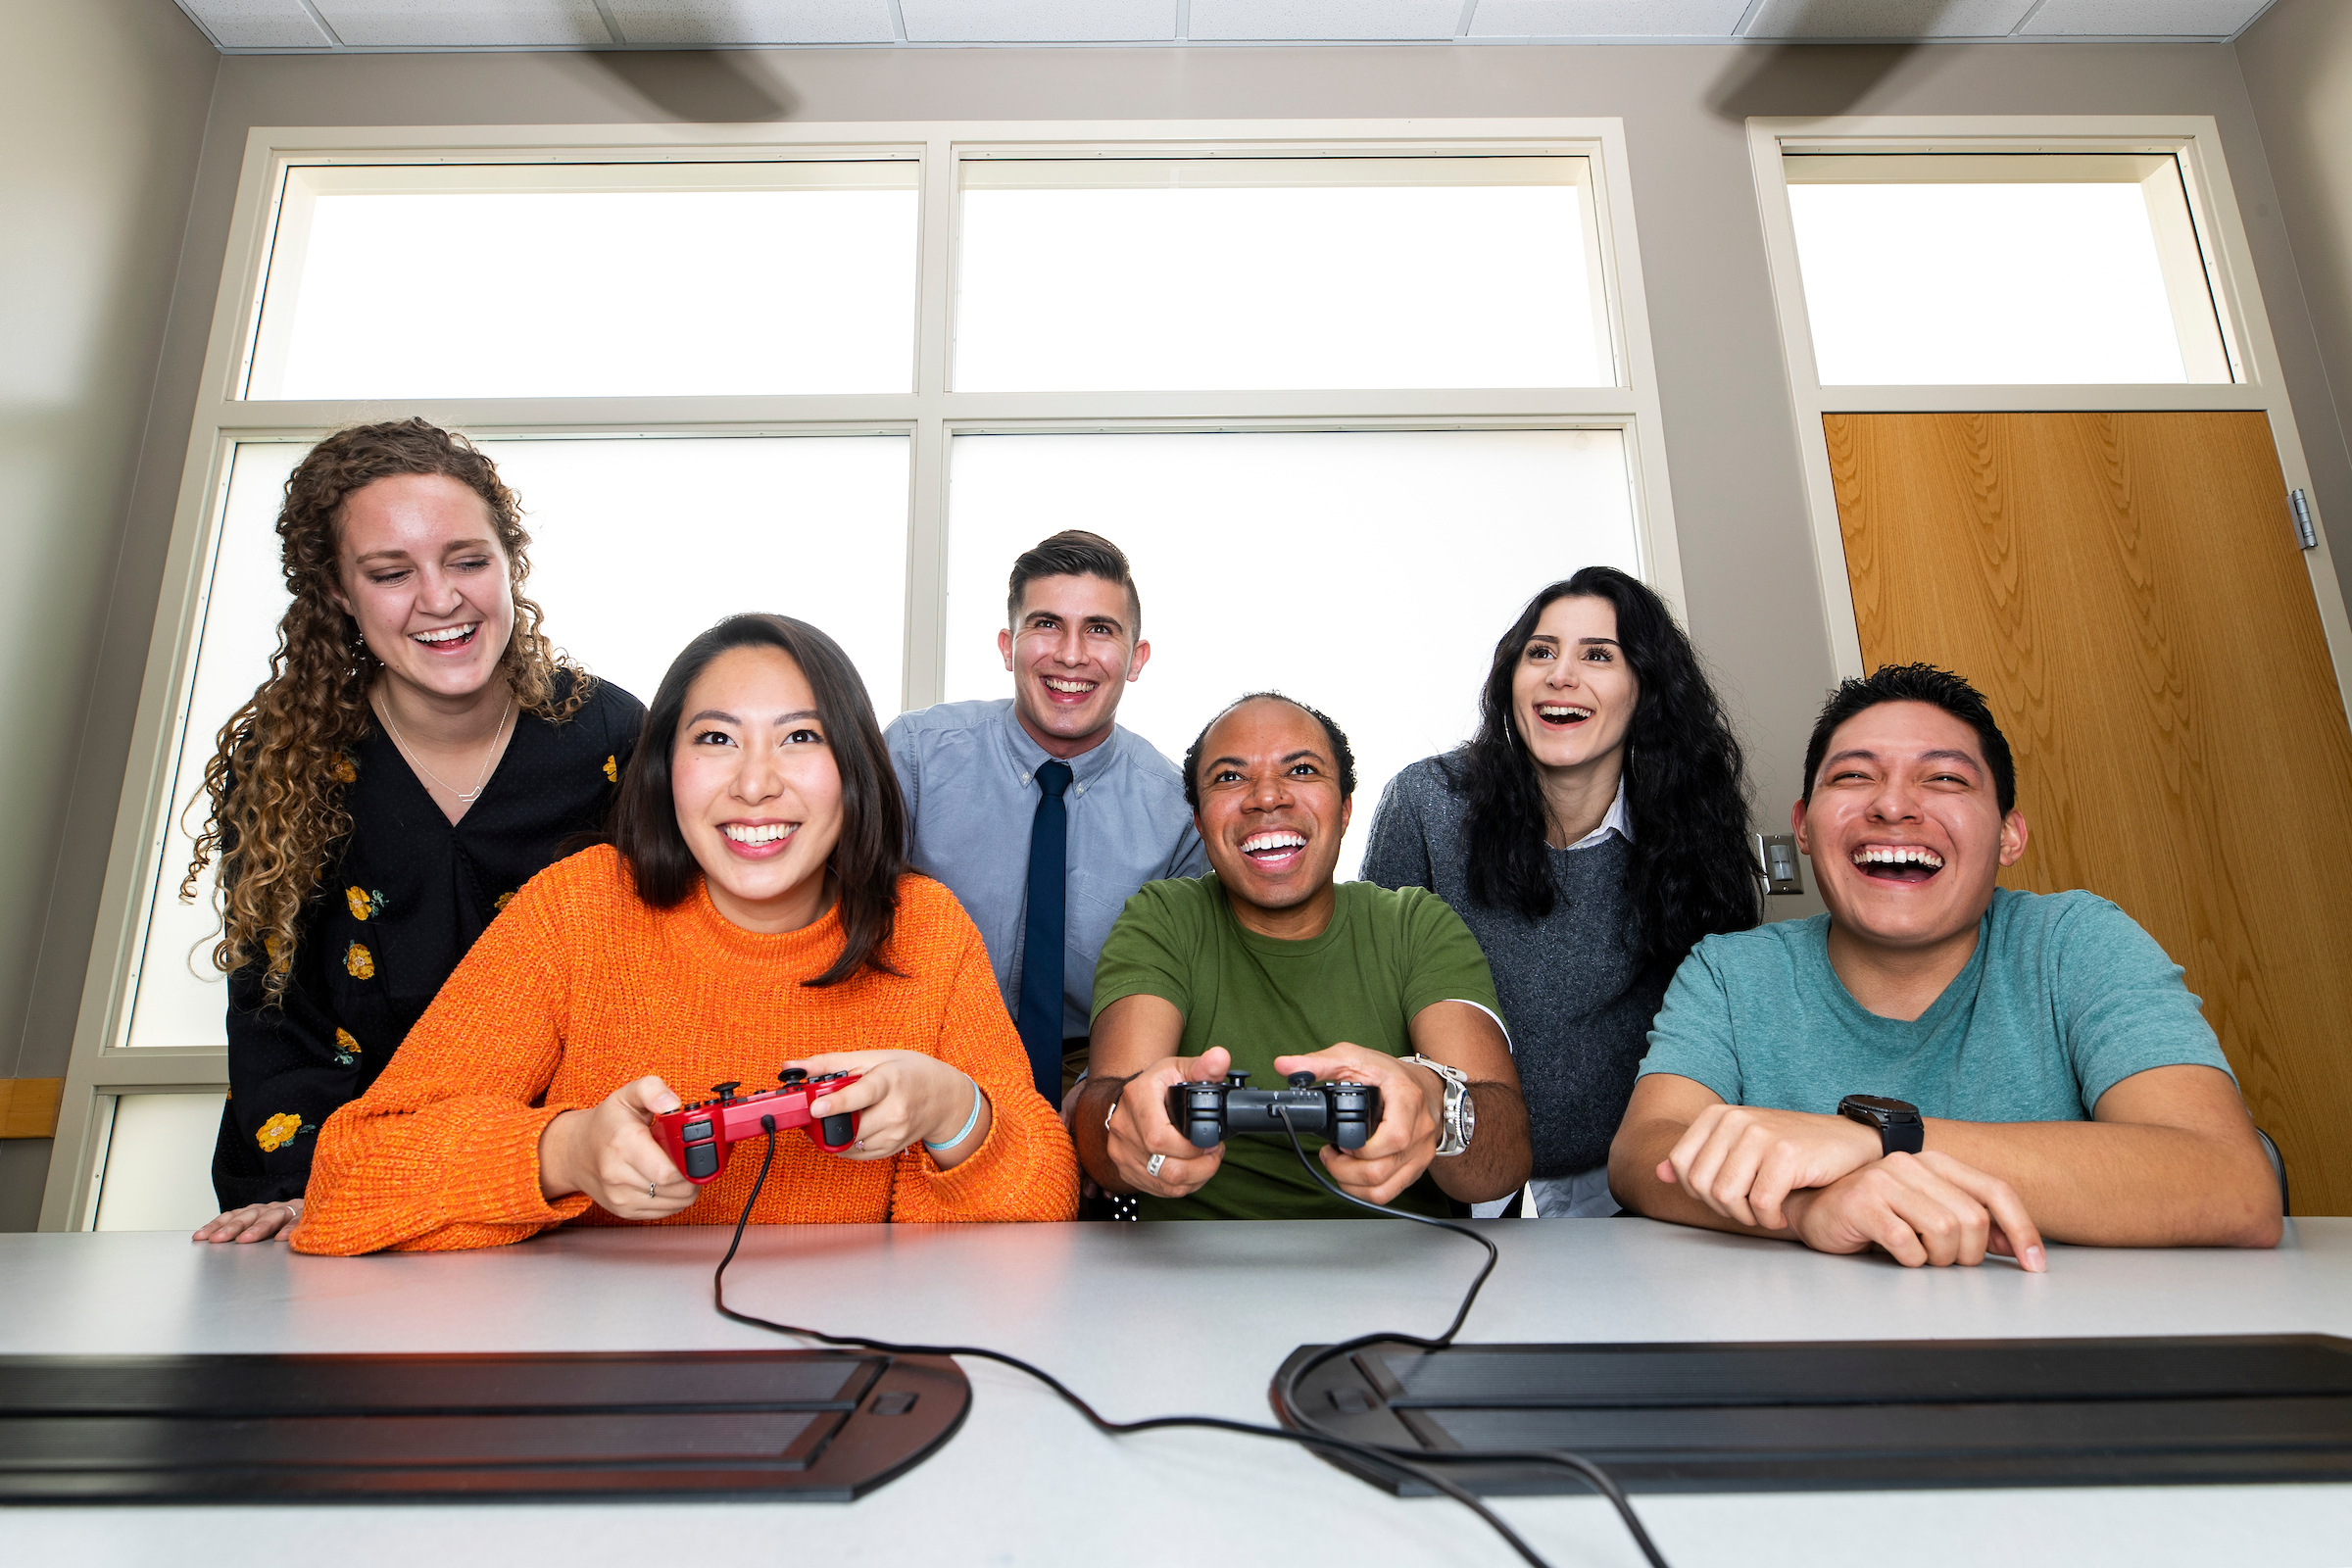 Study: Collaborative video games could increase office productivity